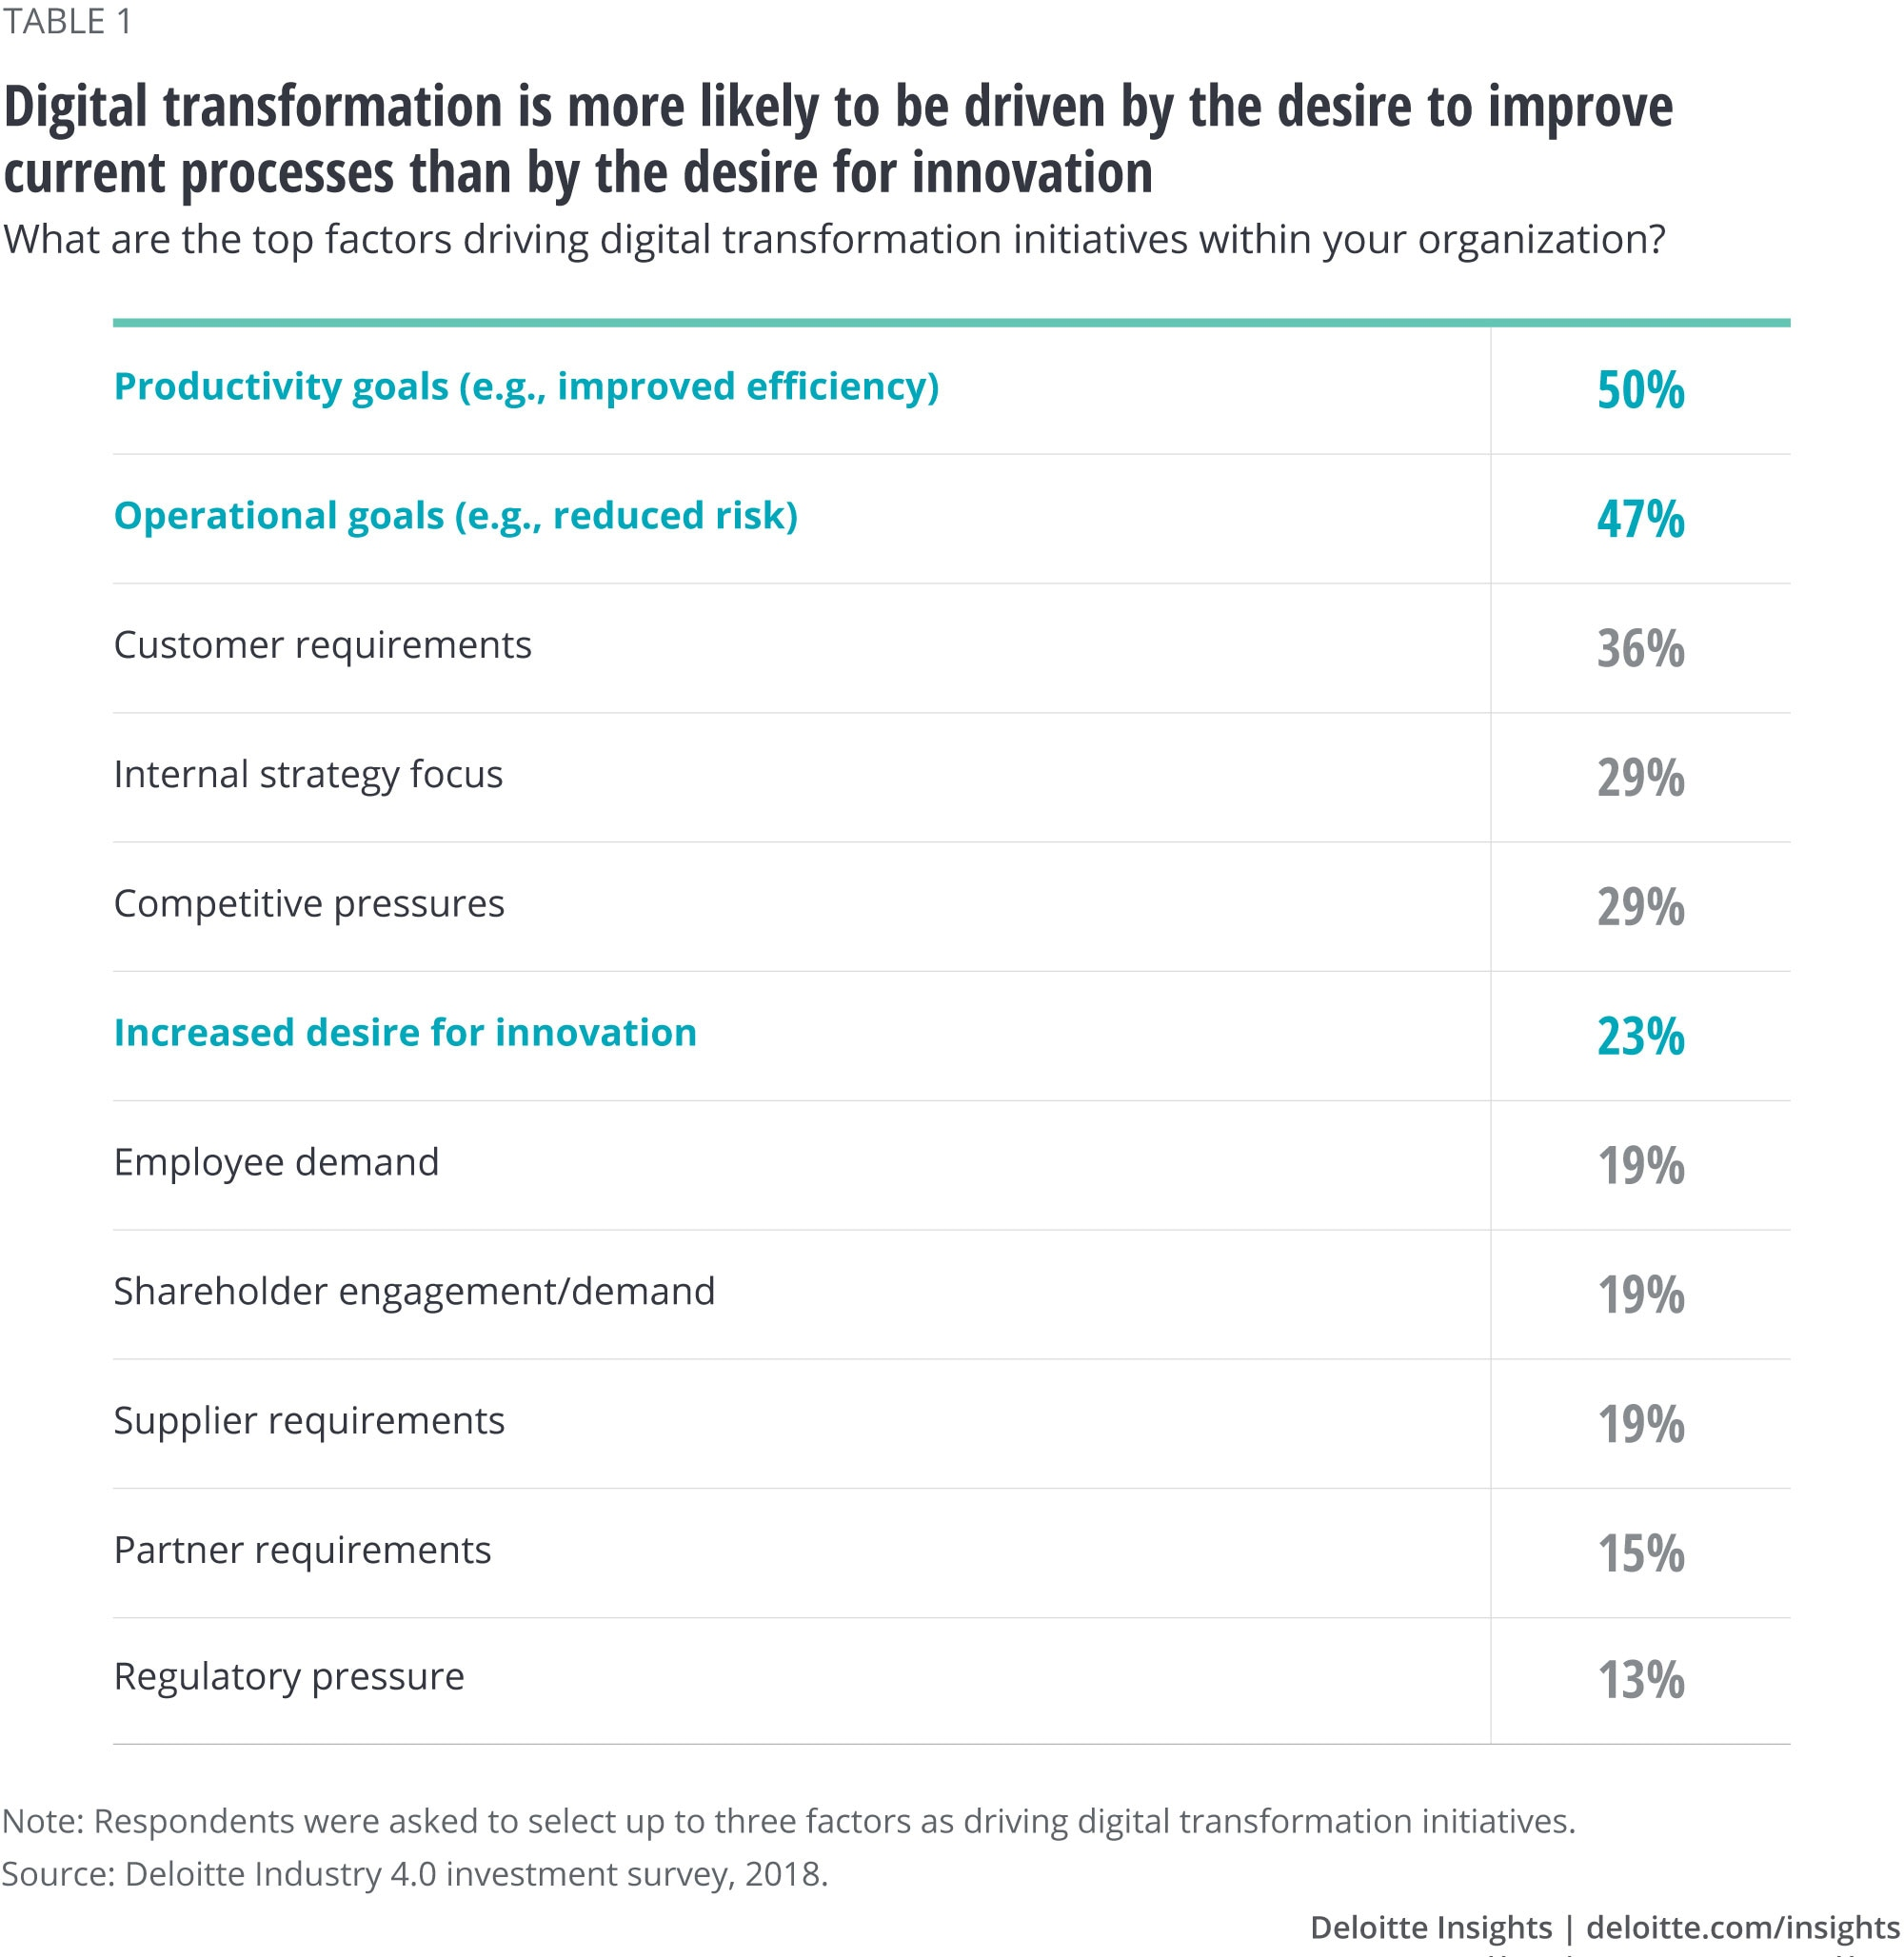 Digital transformation is more likely to be driven by the desire to improve current processes than by the desire for innovation